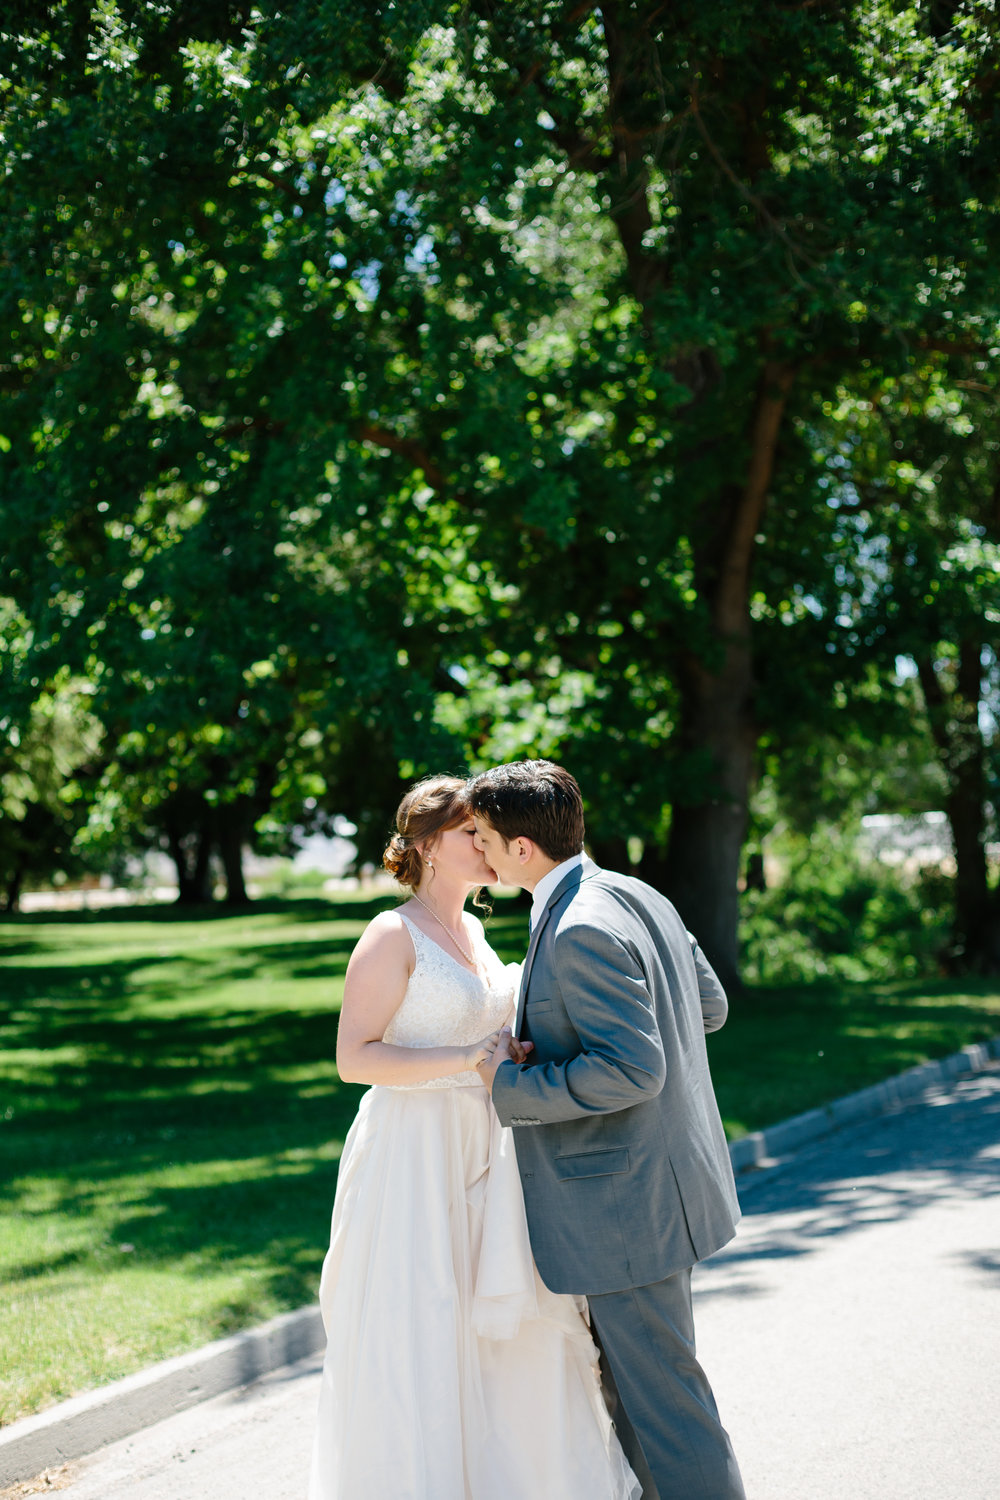 Jordan & Shantel Married - Idaho - Corrie Mick Photography-119.jpg